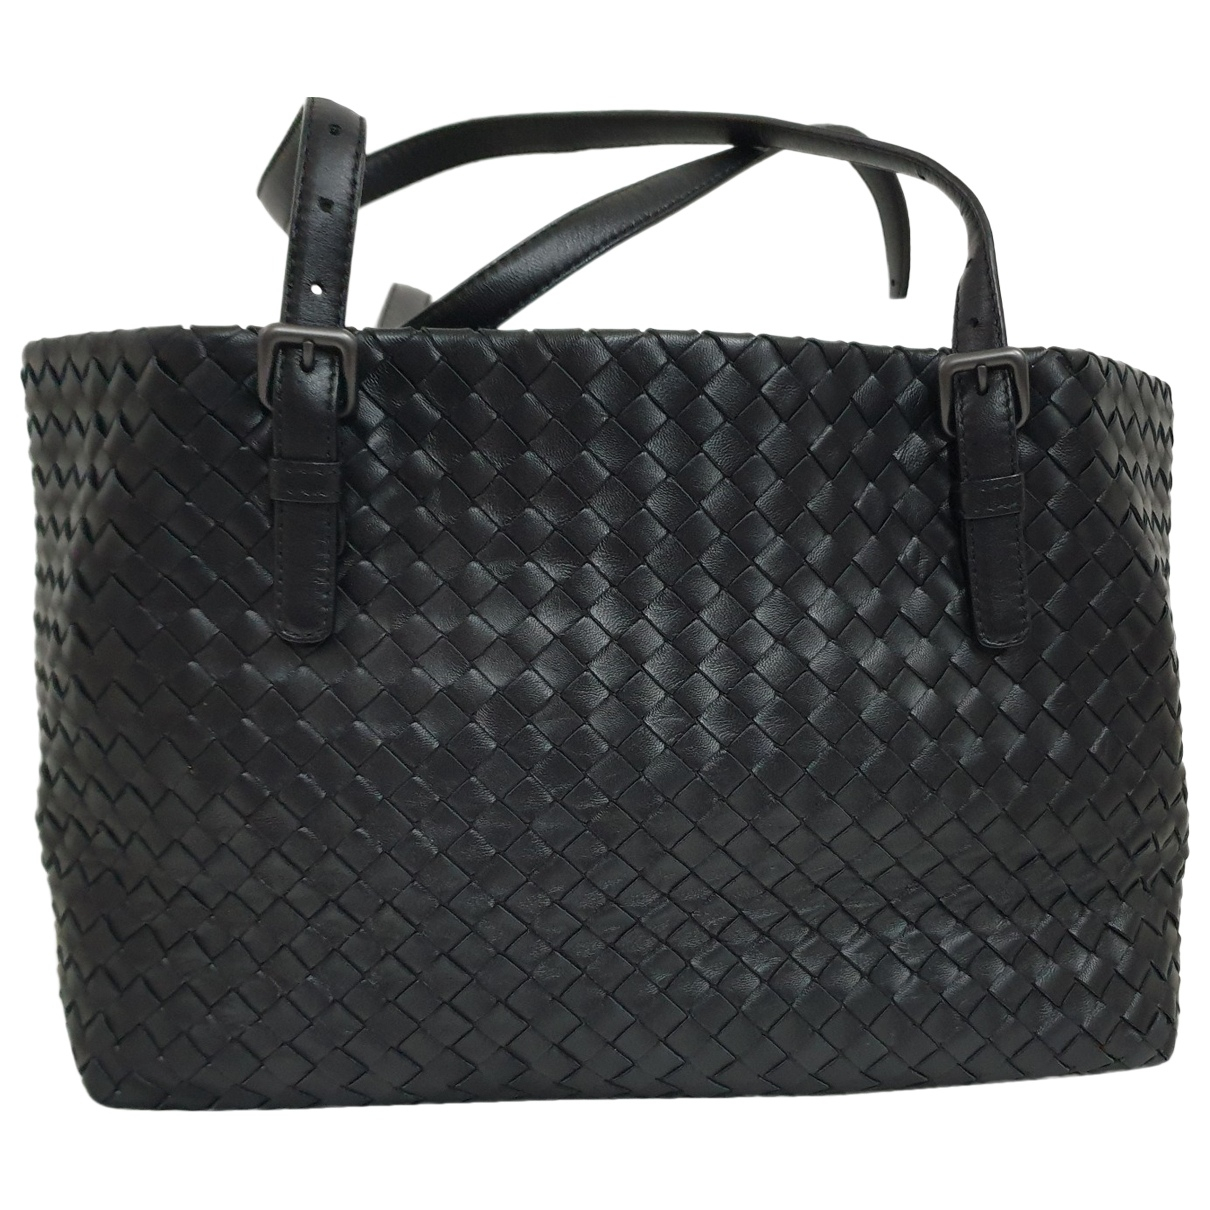 Bottega Veneta Fourre-Tout  Black Leather handbag for Women N